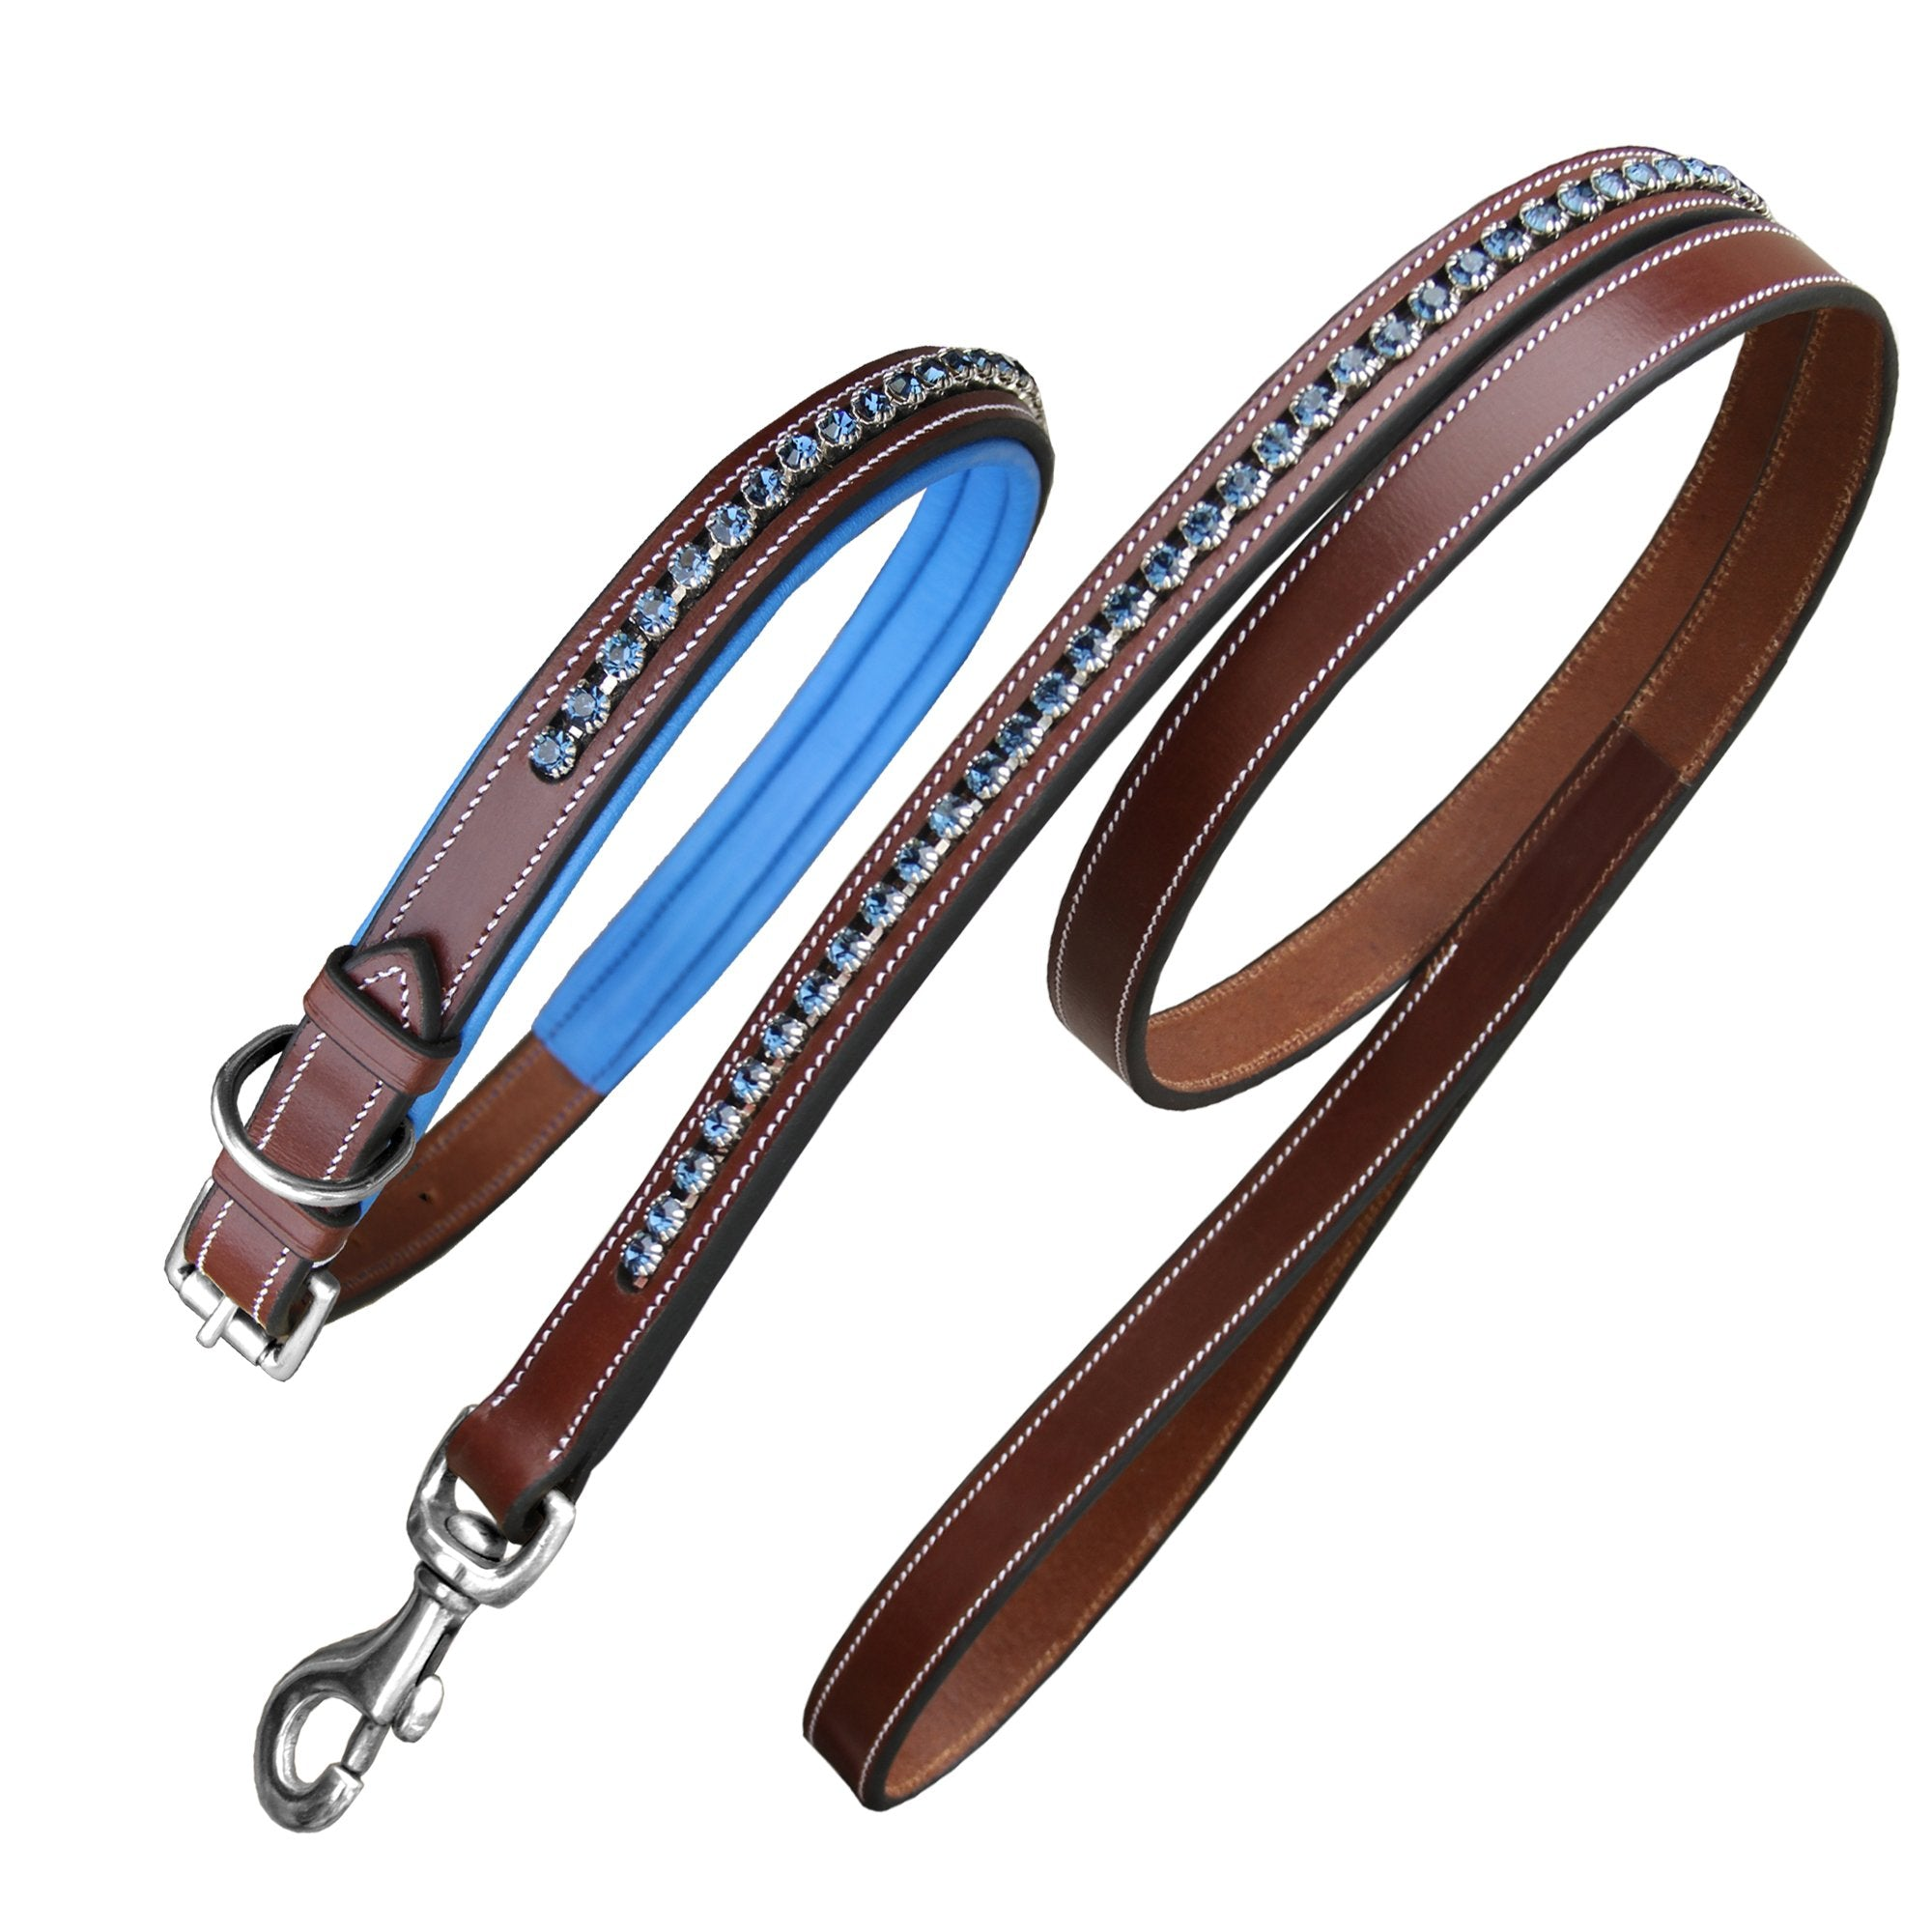 ExionPro Dark Blue Bling Dog Collar With Lead-Bridles & Reins